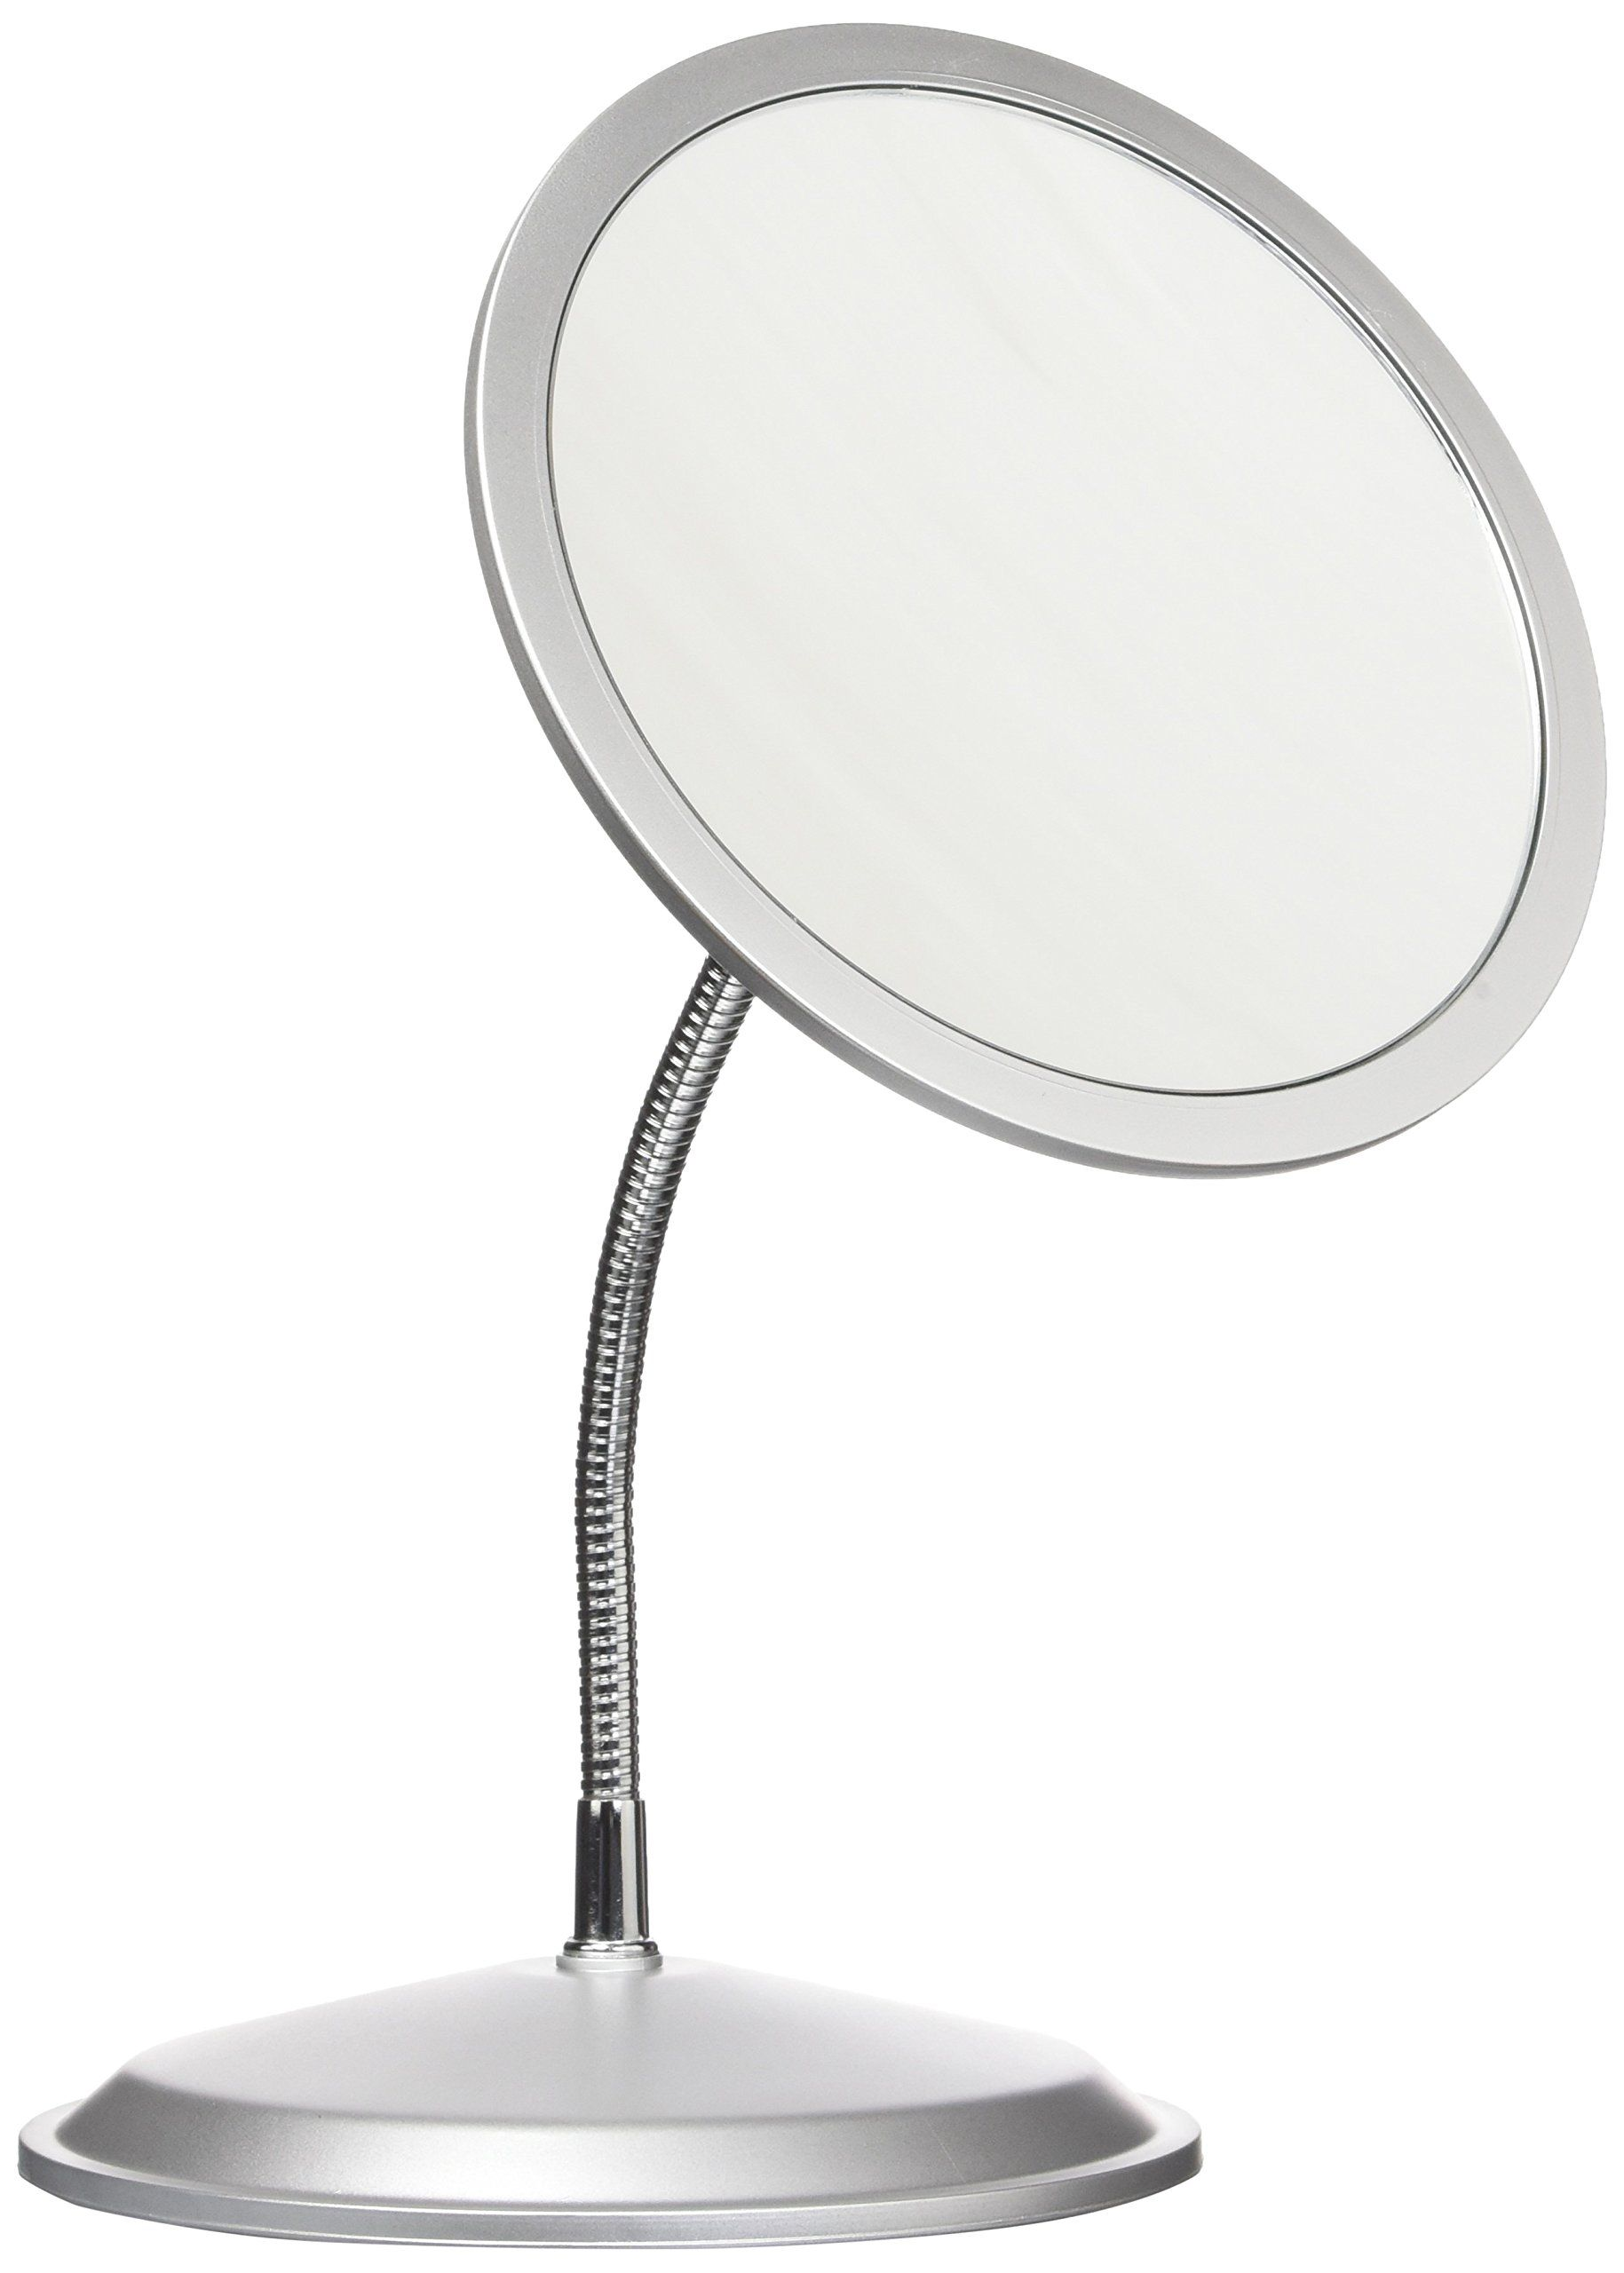 ALHAKIN Wall Mounted Makeup Mirror 10x Magnification 8